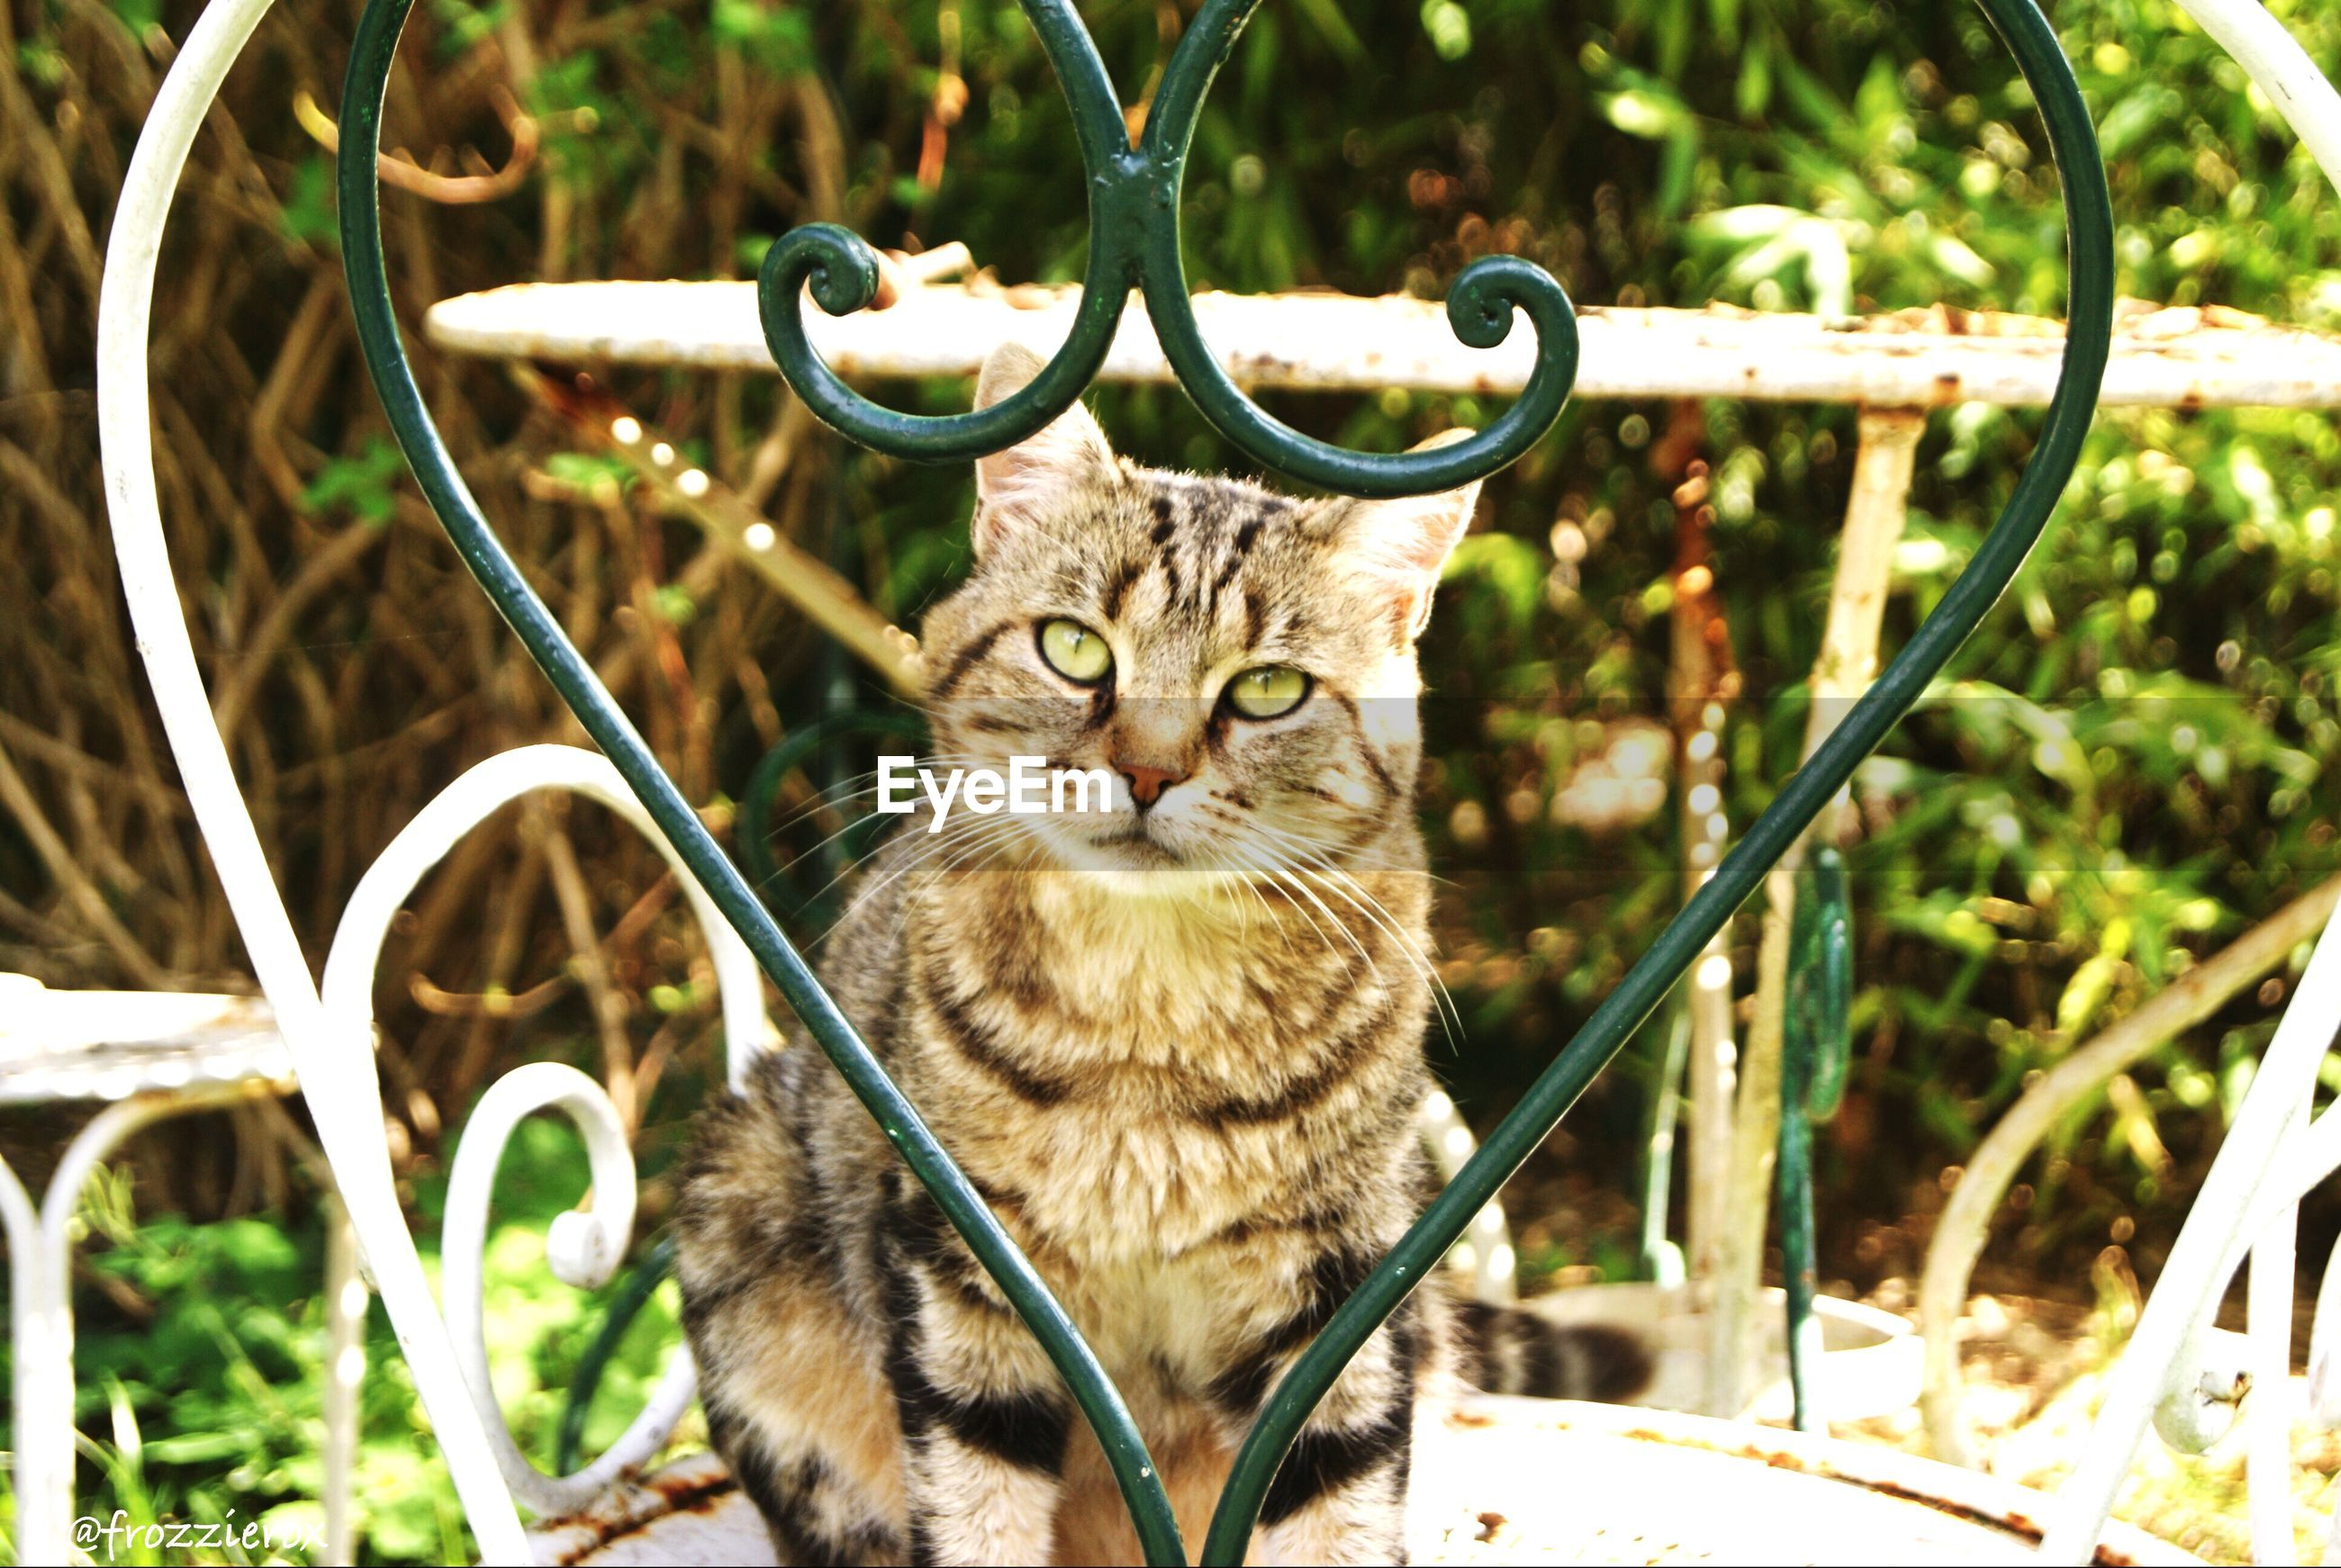 domestic cat, animal themes, one animal, cat, mammal, feline, domestic animals, pets, looking at camera, whisker, portrait, focus on foreground, close-up, sitting, day, outdoors, plant, metal, no people, animal head